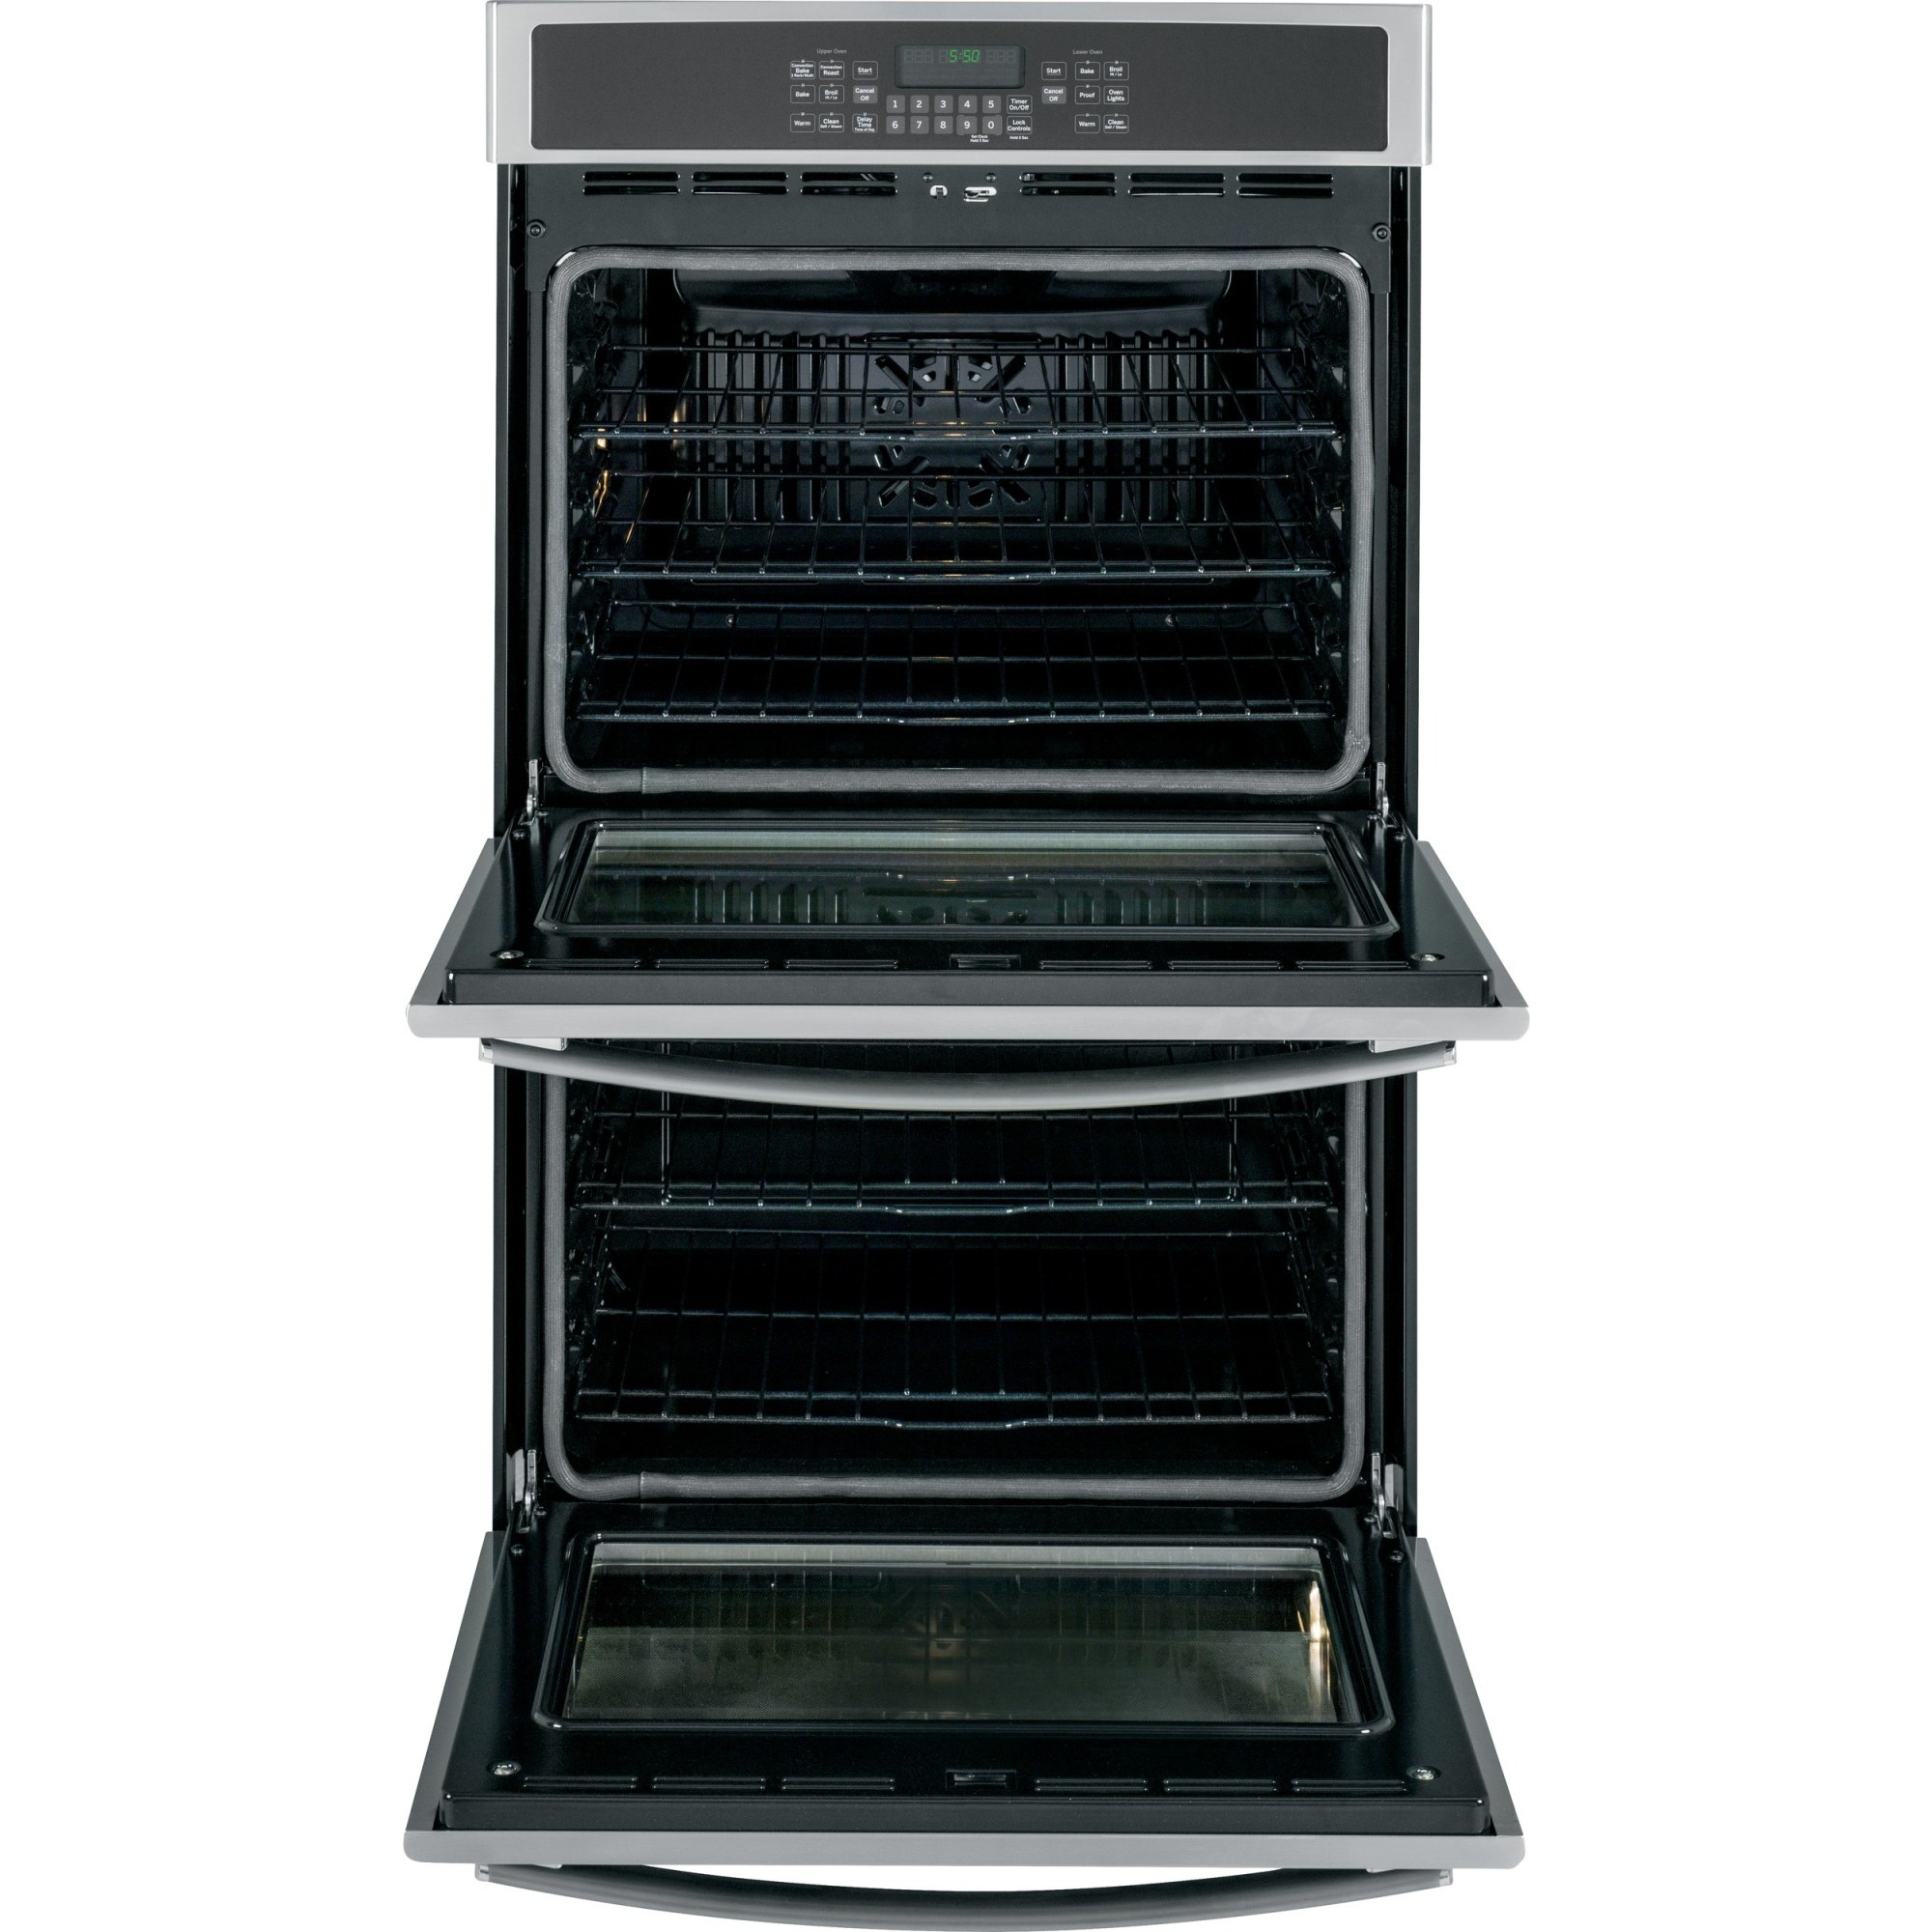 Jt5500sfss Ge 30 Built In Double Wall Oven With Convection